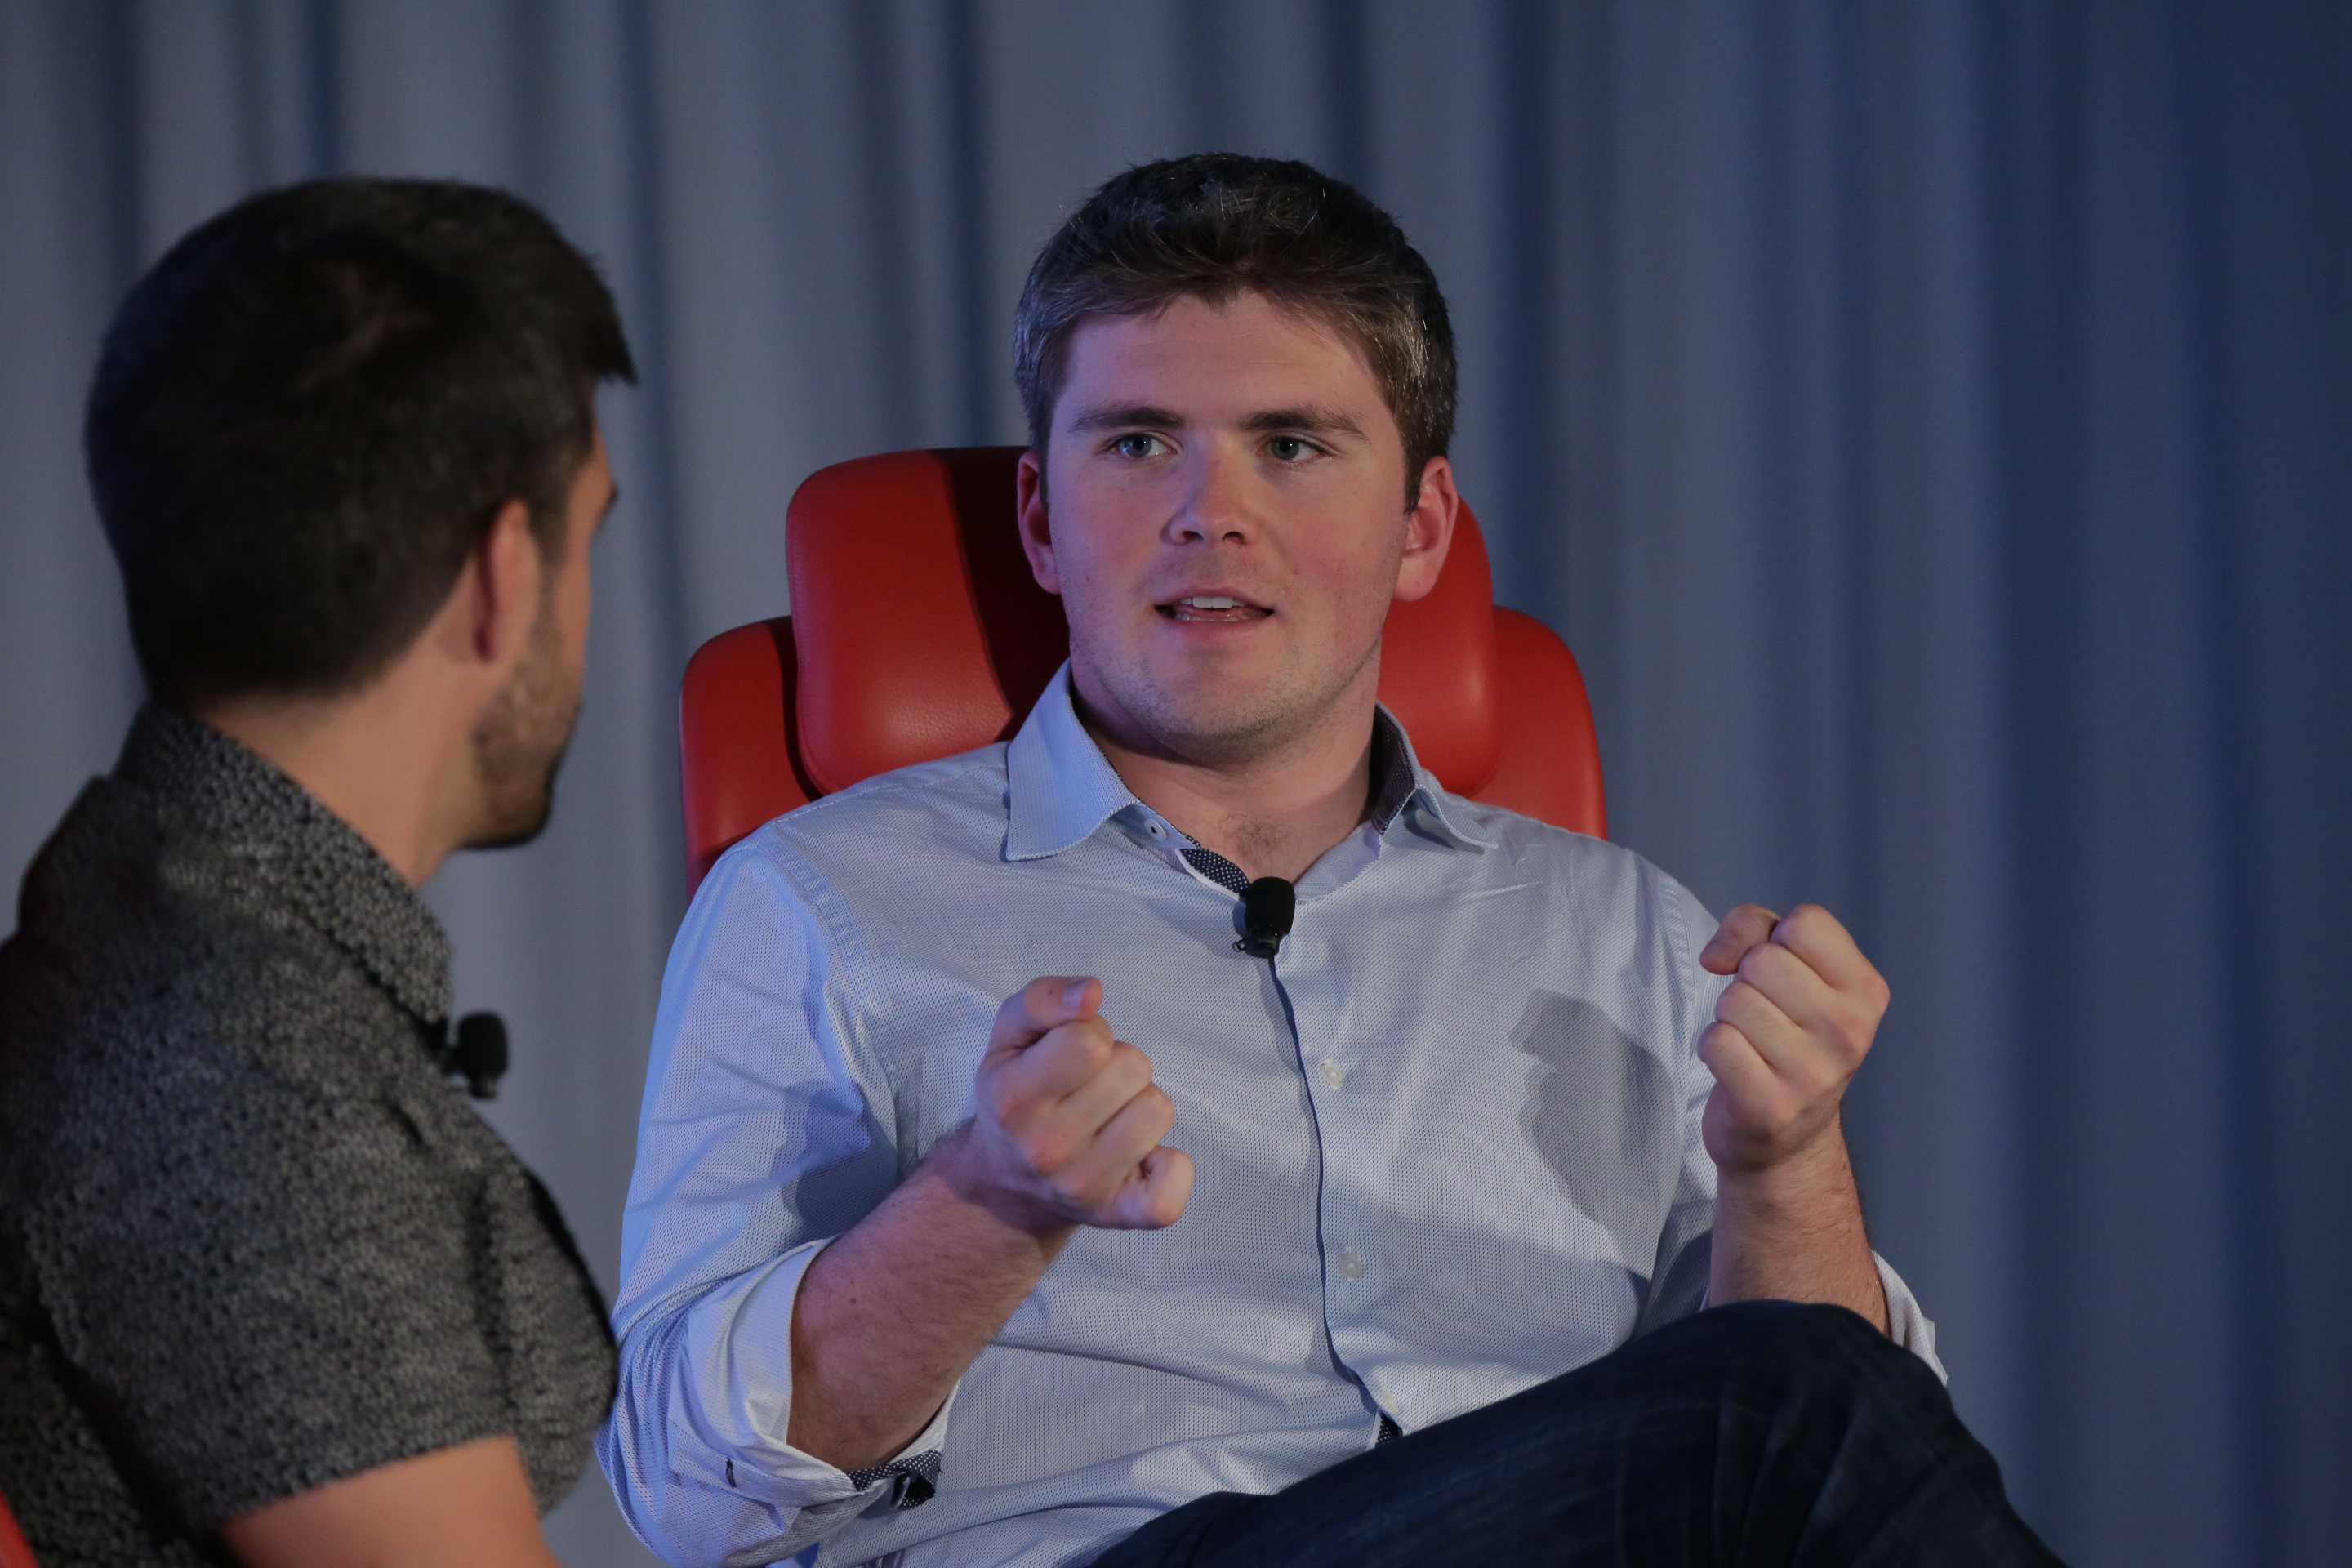 Stripe co-founder and president John Collison onstage at Code Commerce 2018